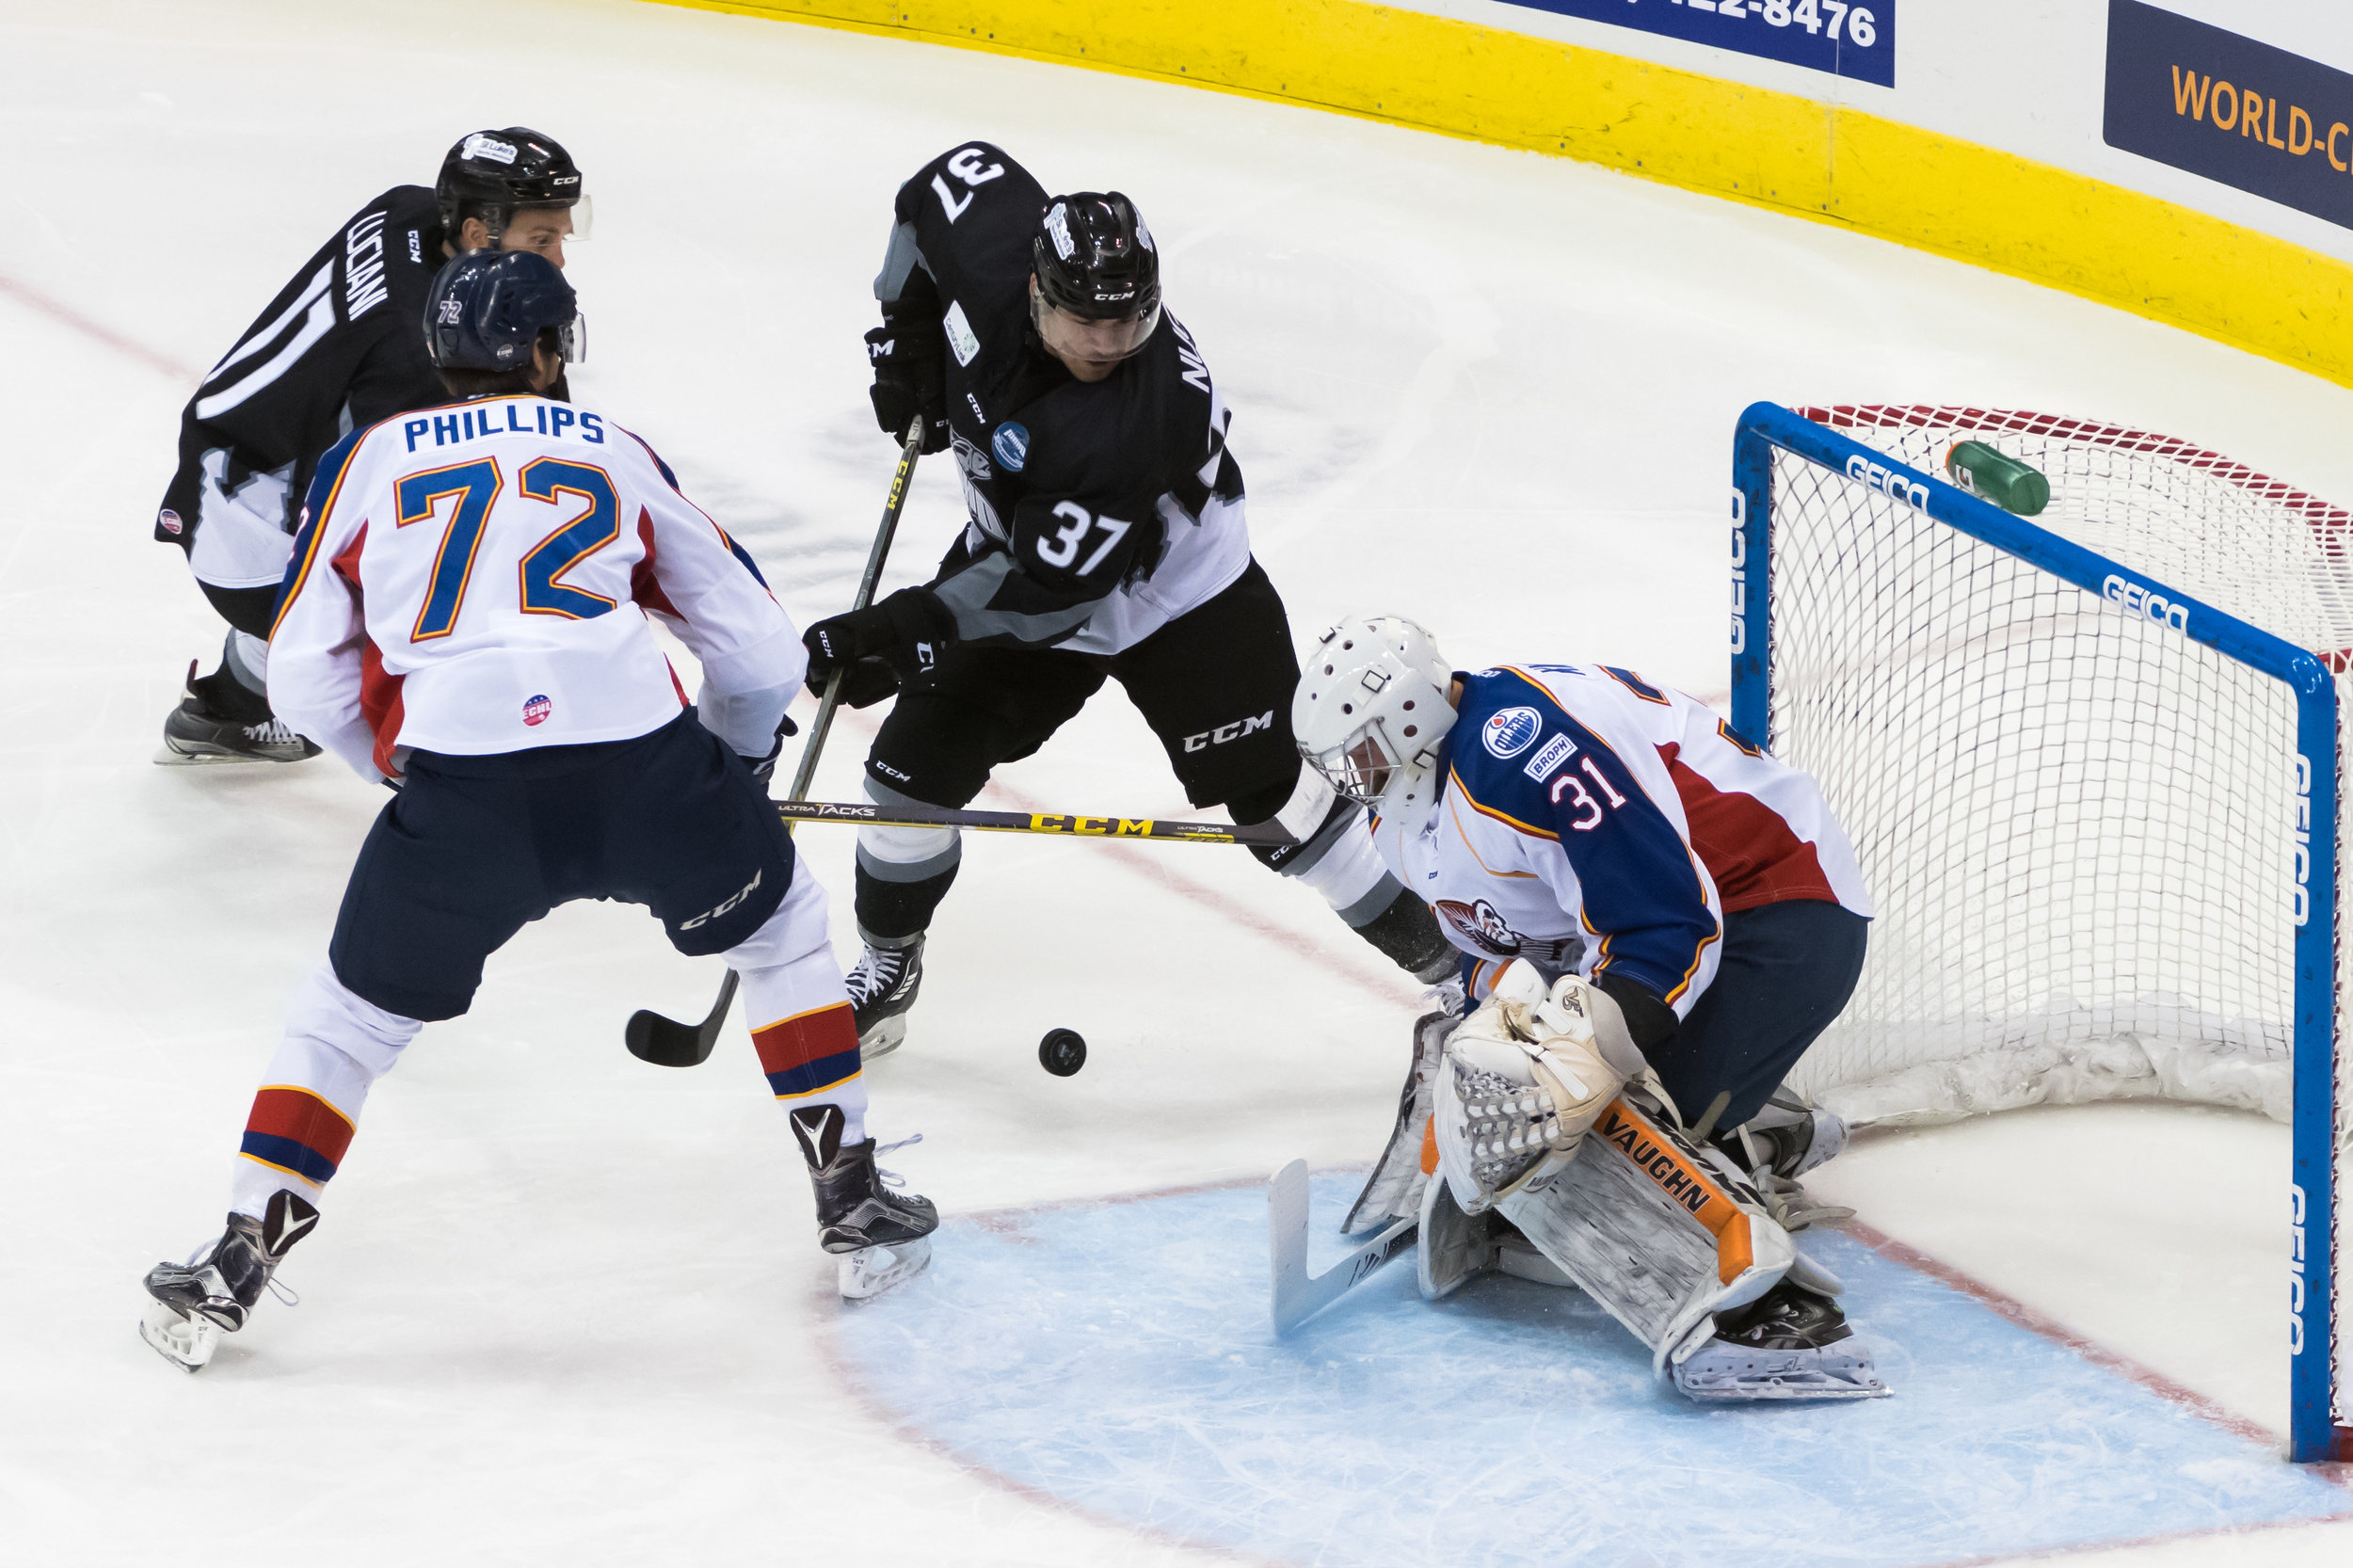 Idaho Steelheads forward Brian Nugent (37) takes a shot against Norfolk Admirals goalie Connor Knapp (31) during Saturday night's game at the Scope Arena in Norfolk, Virginia. Idaho defeated Norfolk 4-1.